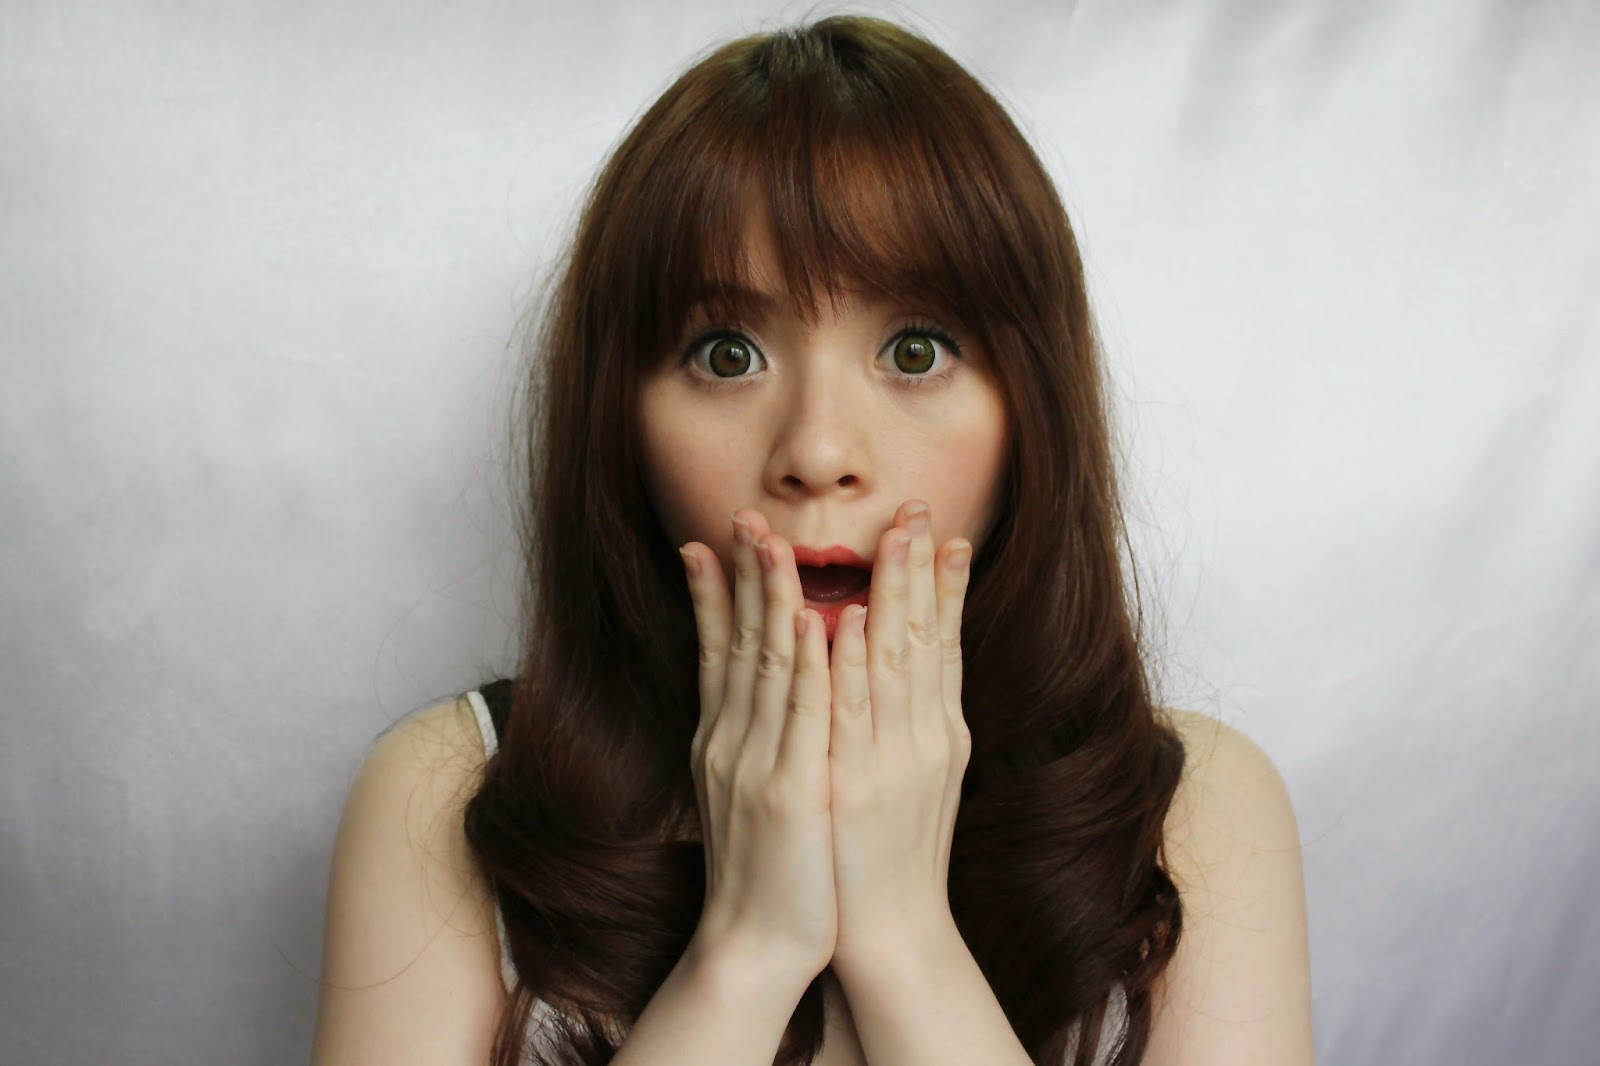 Girl with shock face expression